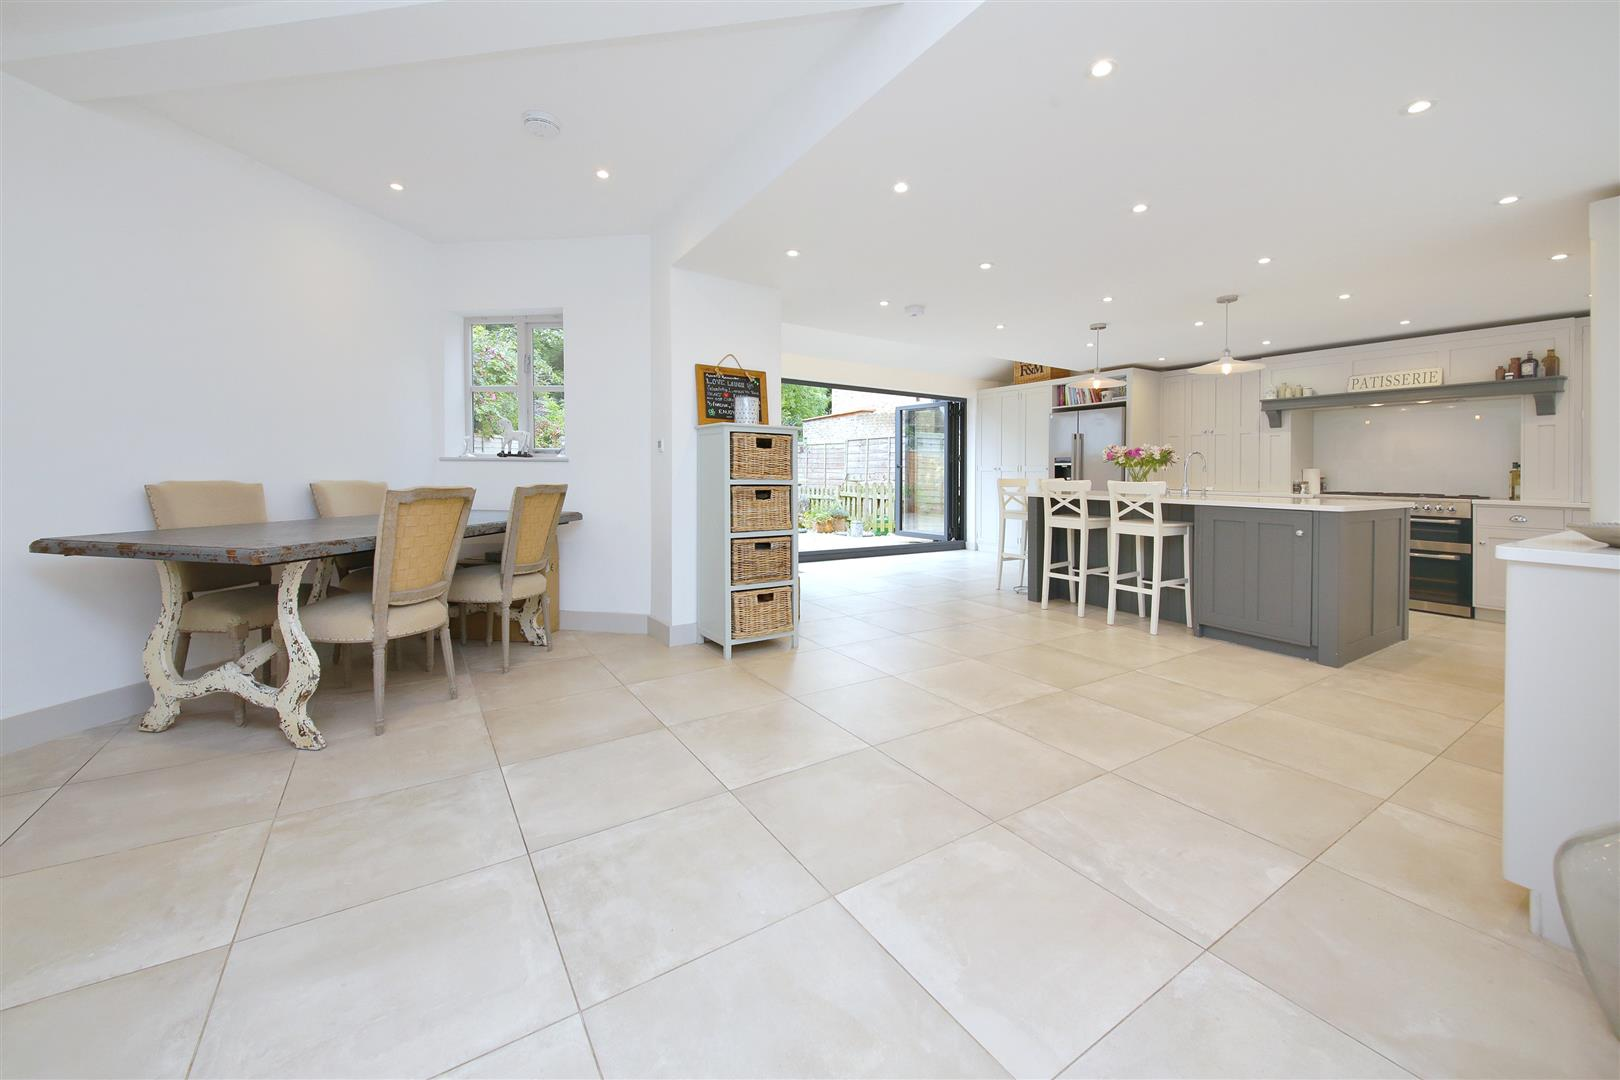 5 bed to rent in Letchmore Heath - (Property Image 2)